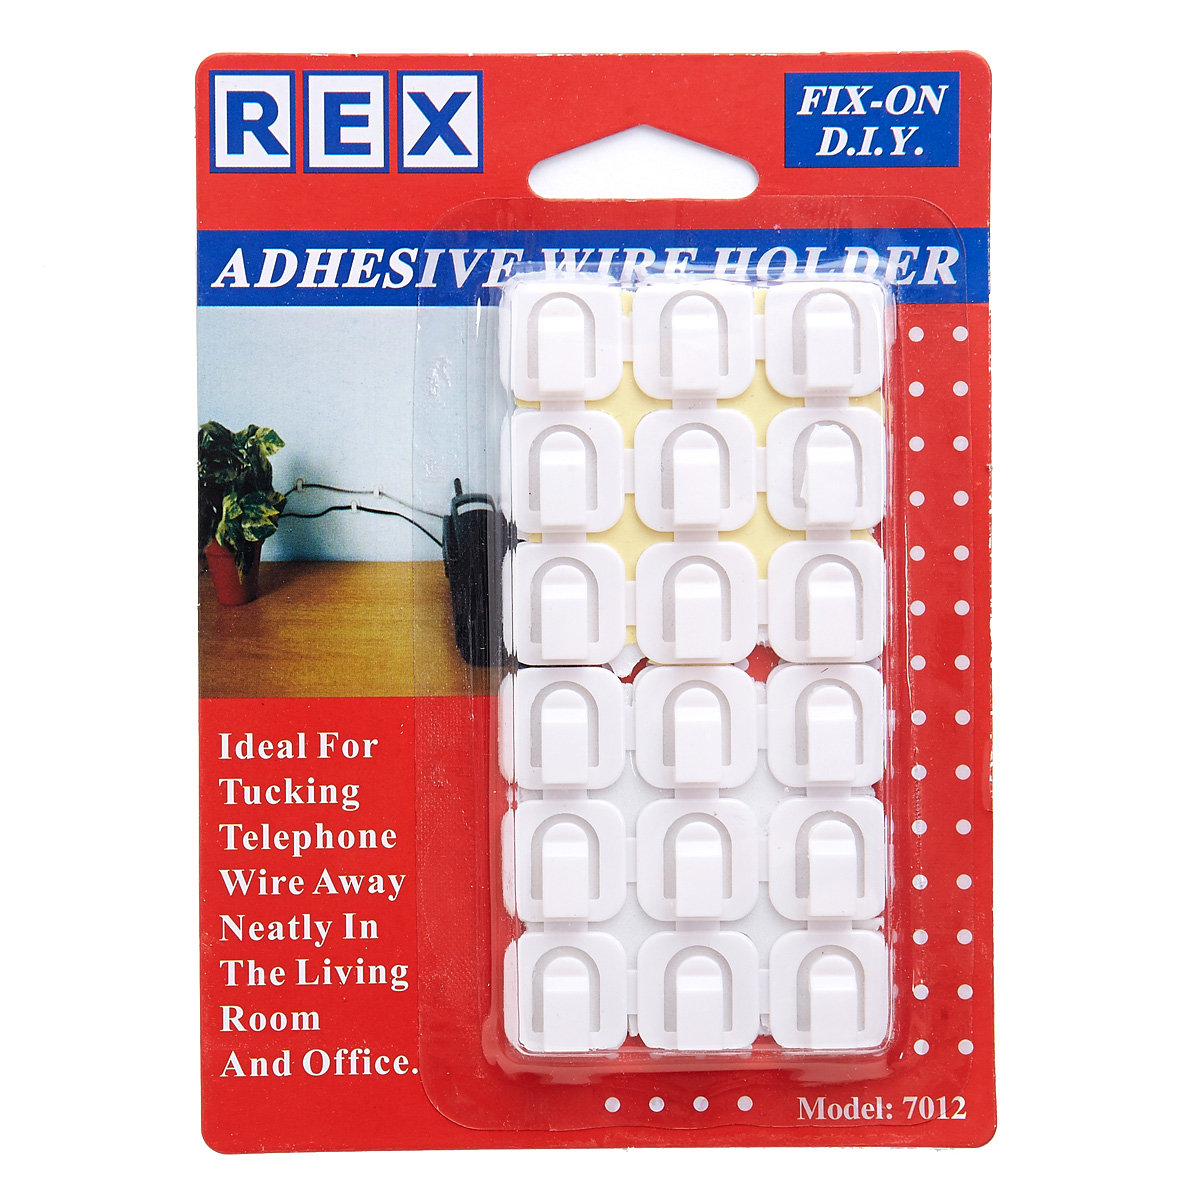 Adhesive Wire Holders